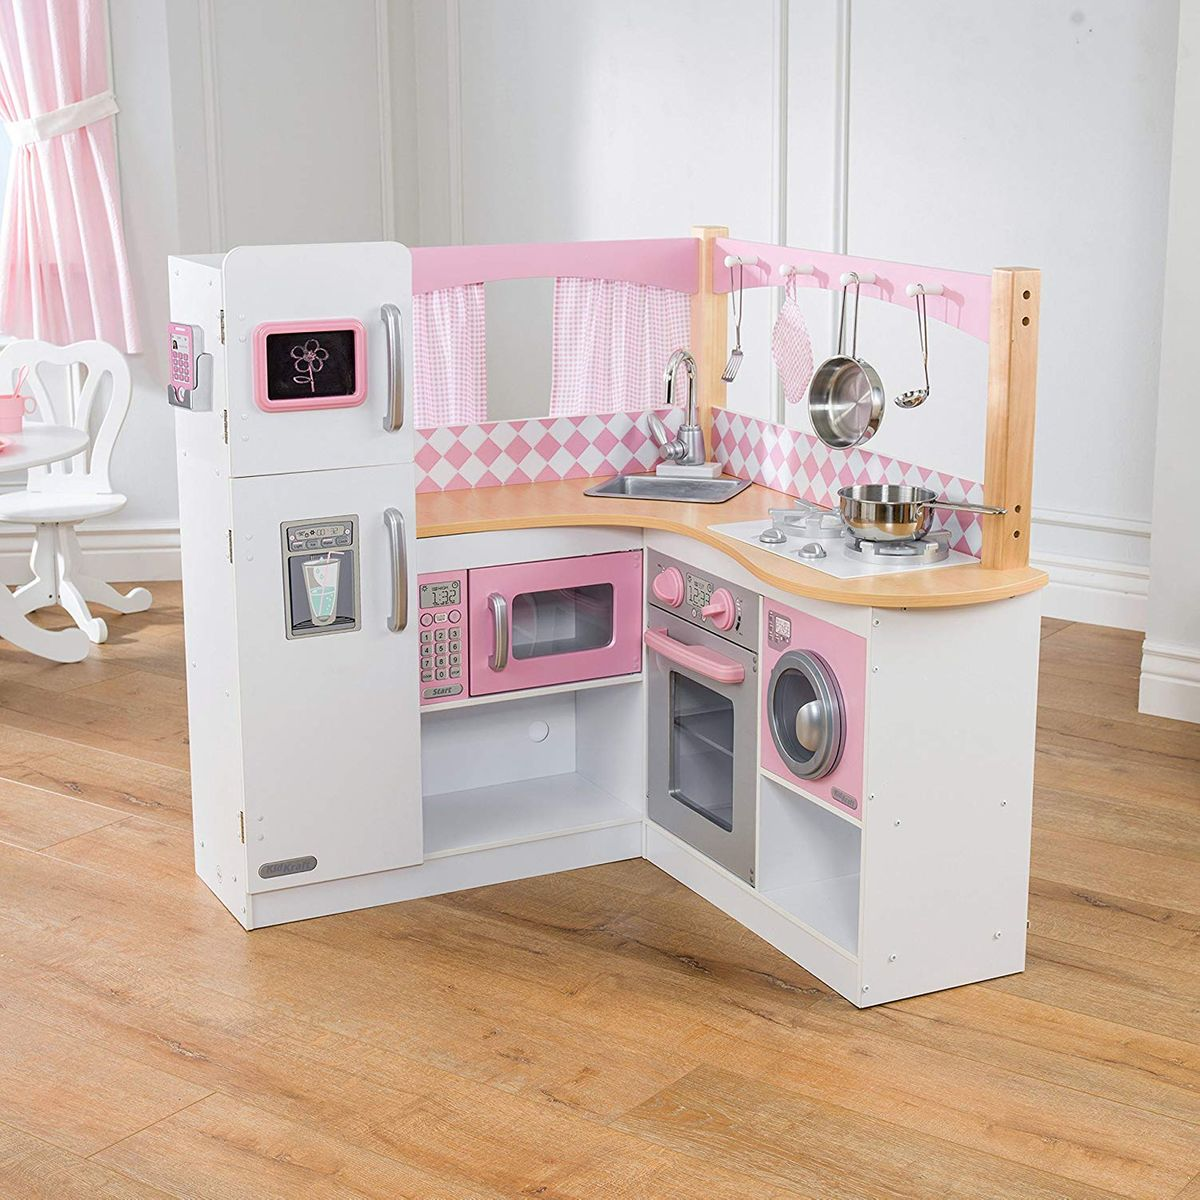 3 Best Toy Kitchen Sets 3  The Strategist  New York Magazine